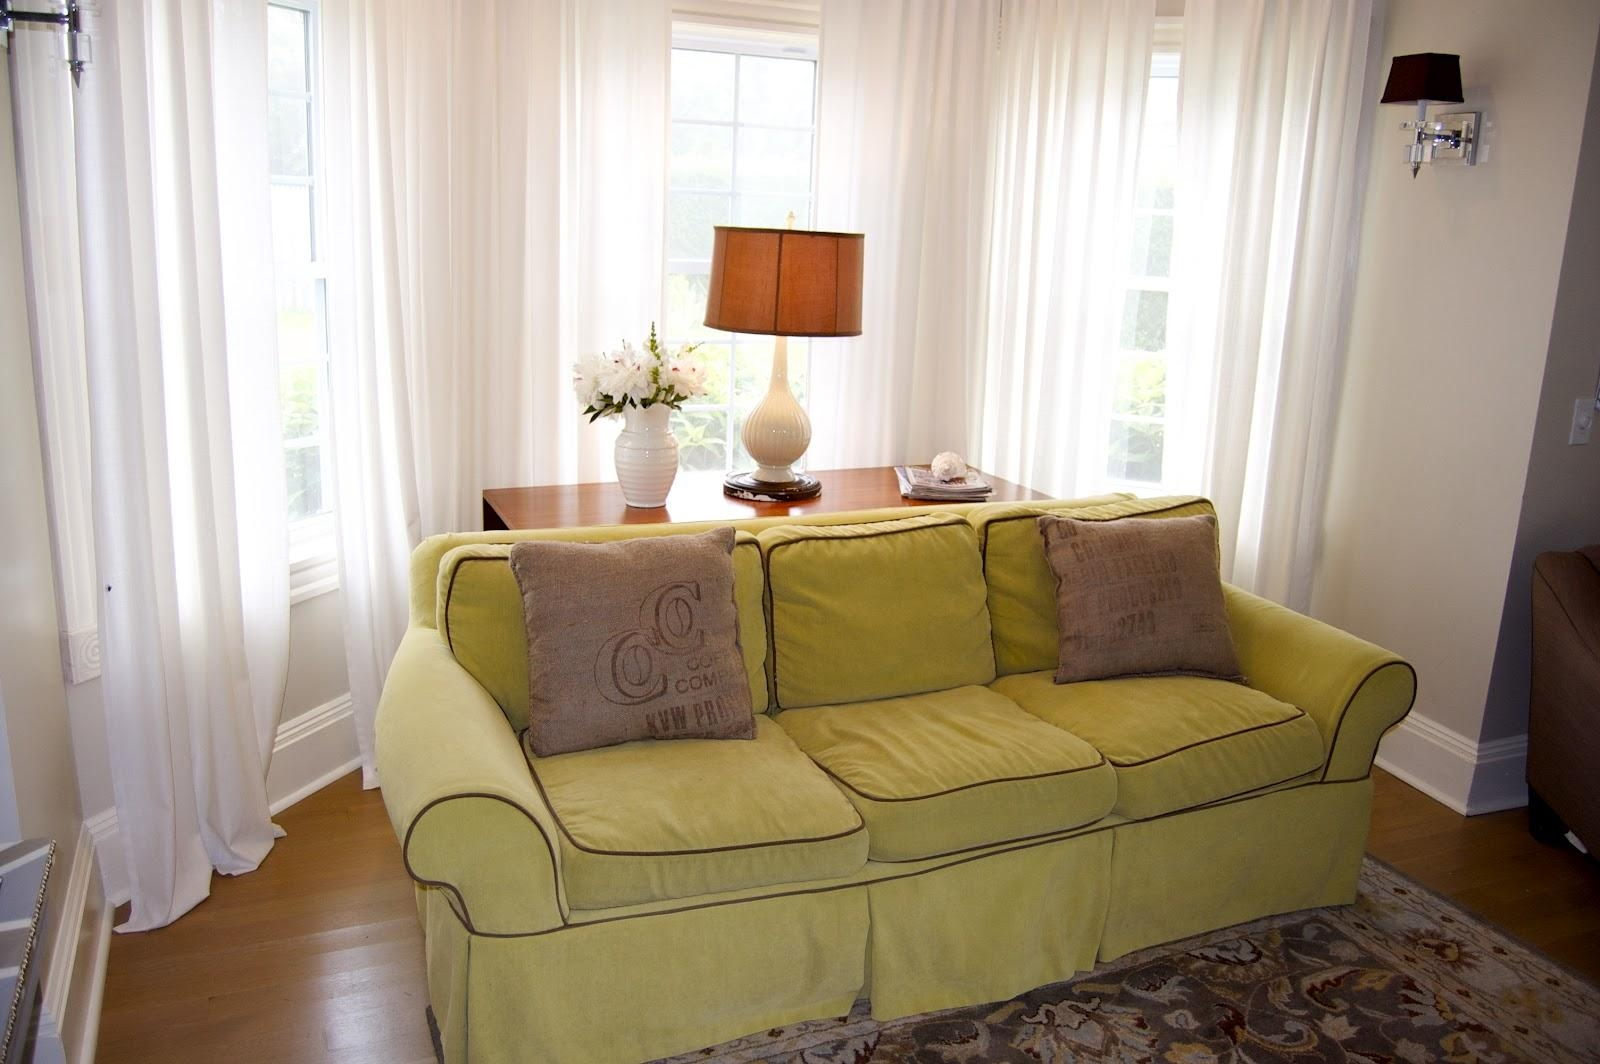 Bay Window Interior Design – Pueblosinfronteras In Sofas For Bay Window (Image 2 of 20)